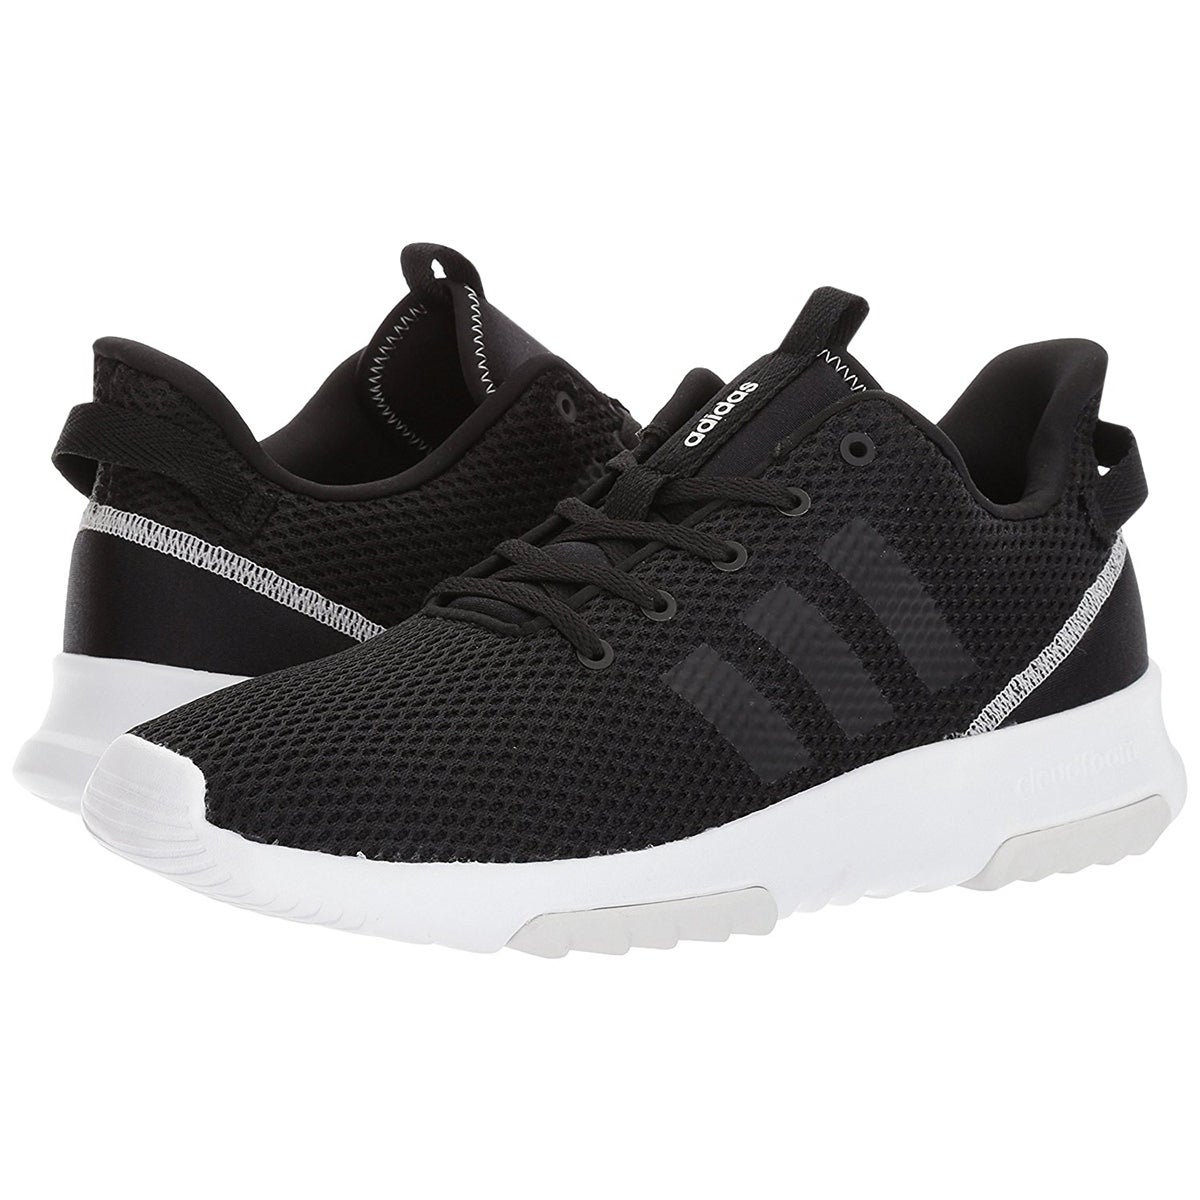 brand new 71c11 9744f Shop Adidas Womens Neo CloudFoam Racer Trail Running Shoes - BlackWhite -  Free Shipping Today - Overstock - 19813166